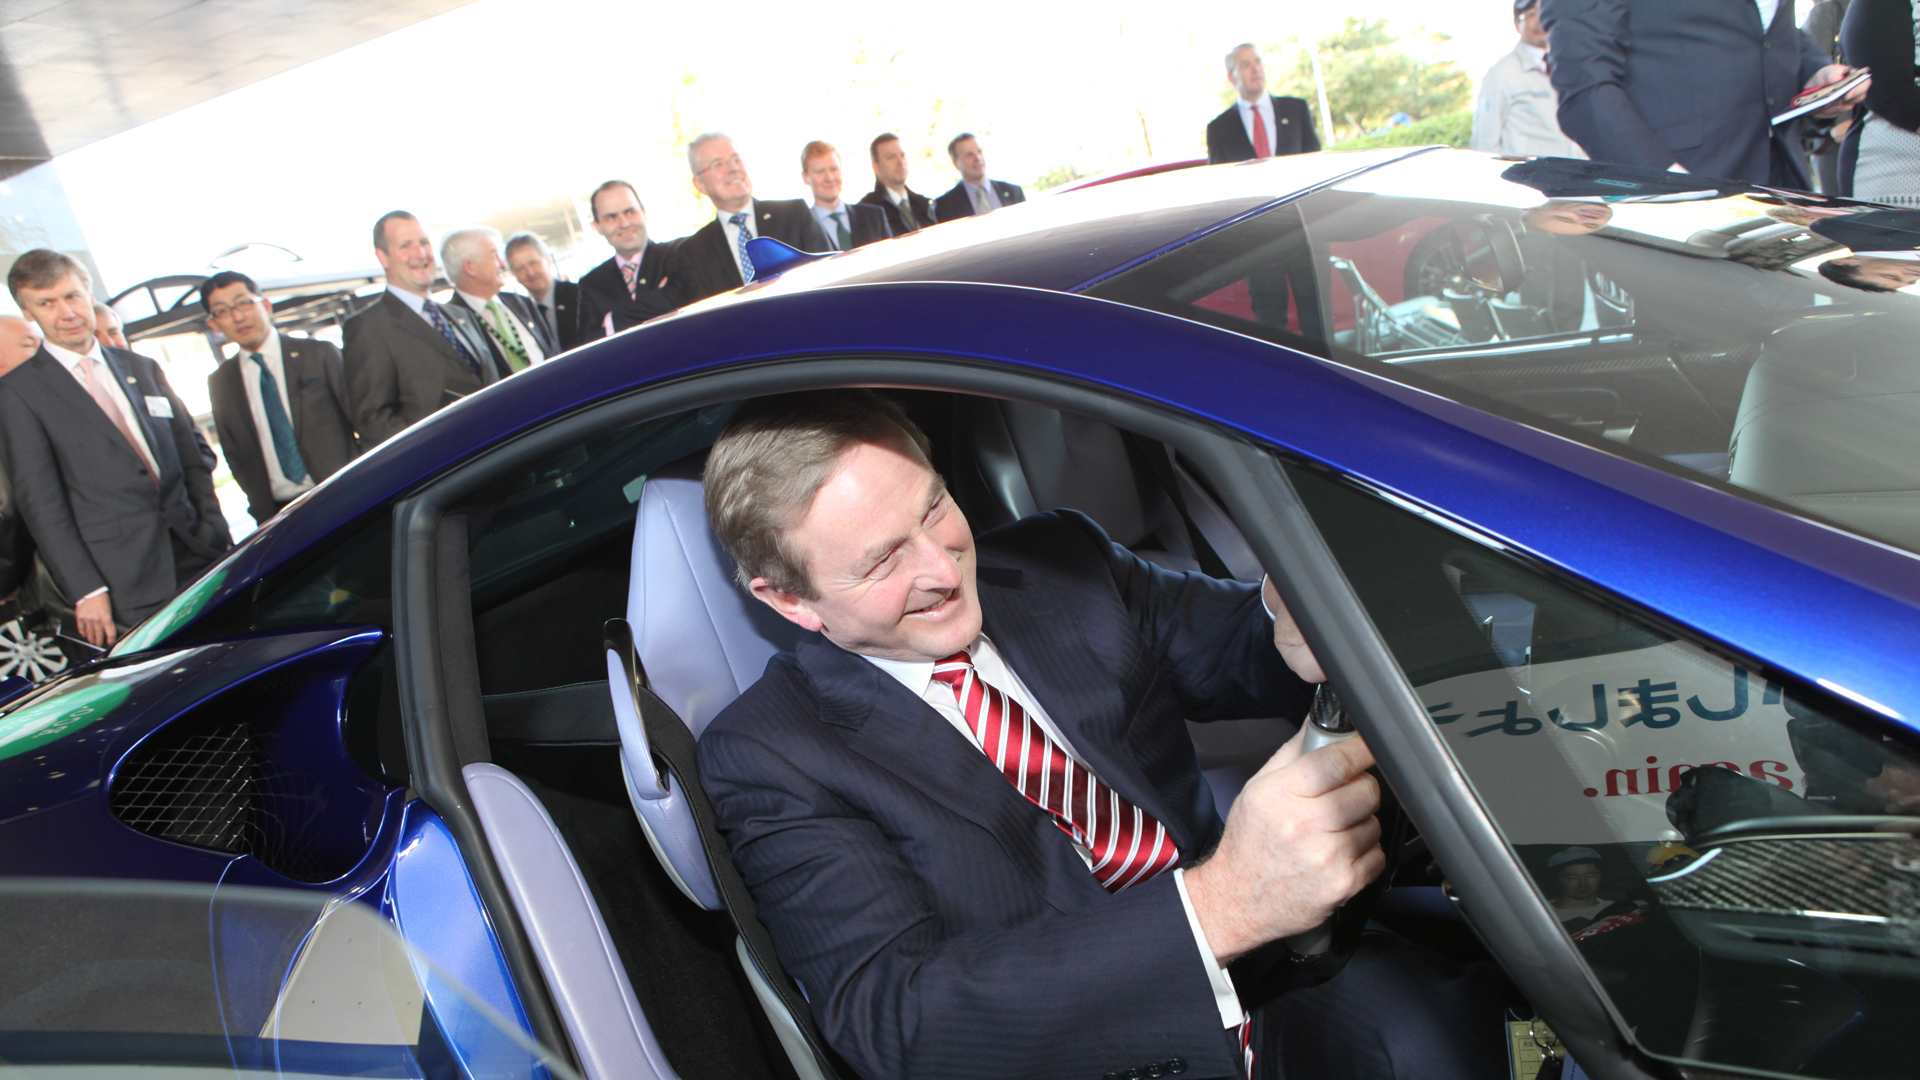 Taoiseach visits Toyota plant in Japan